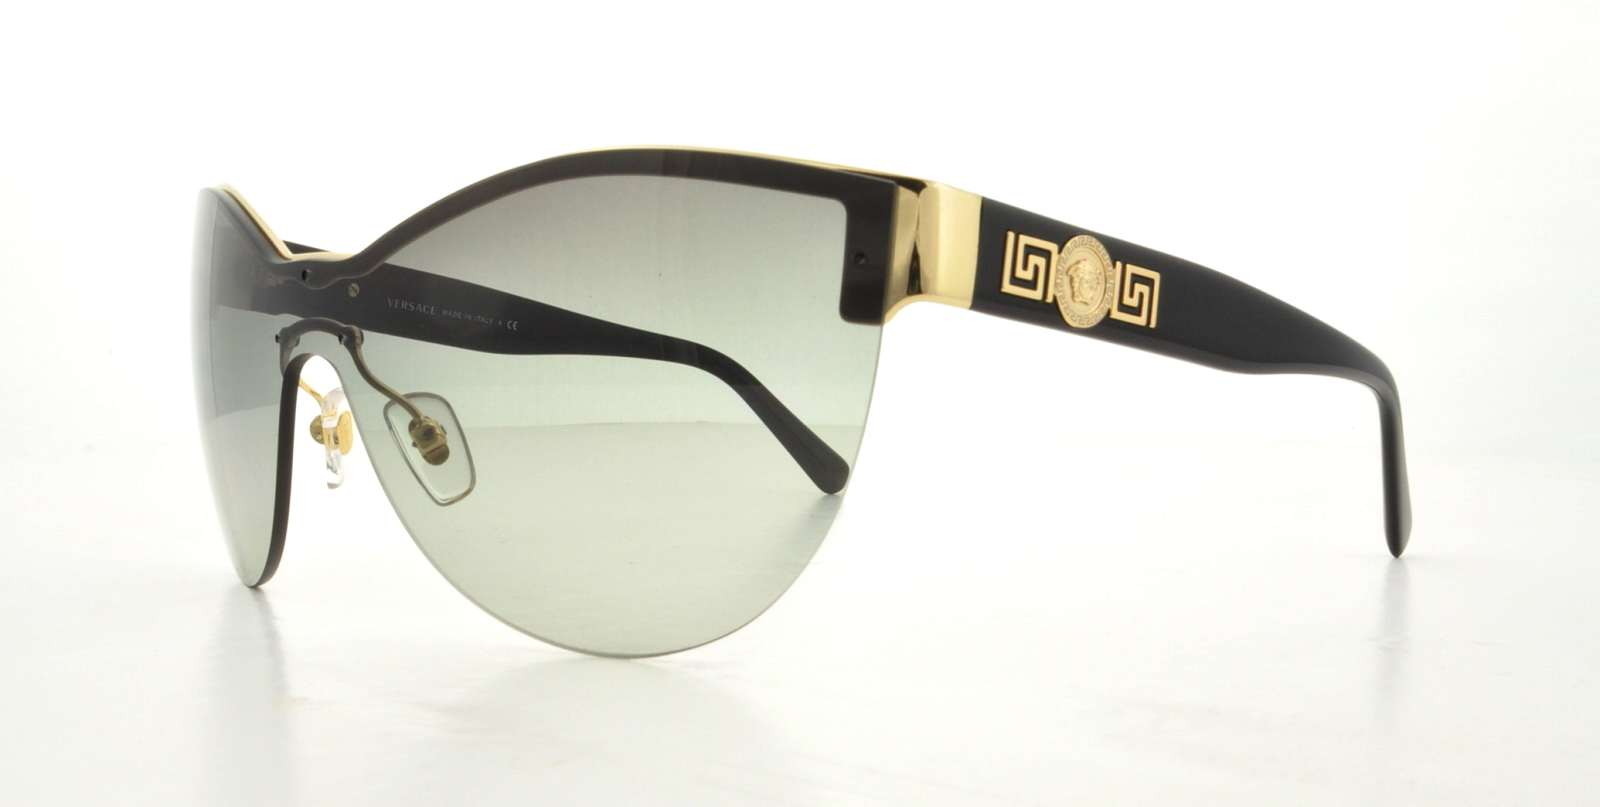 Designer Frames Outlet. Versace VE2144